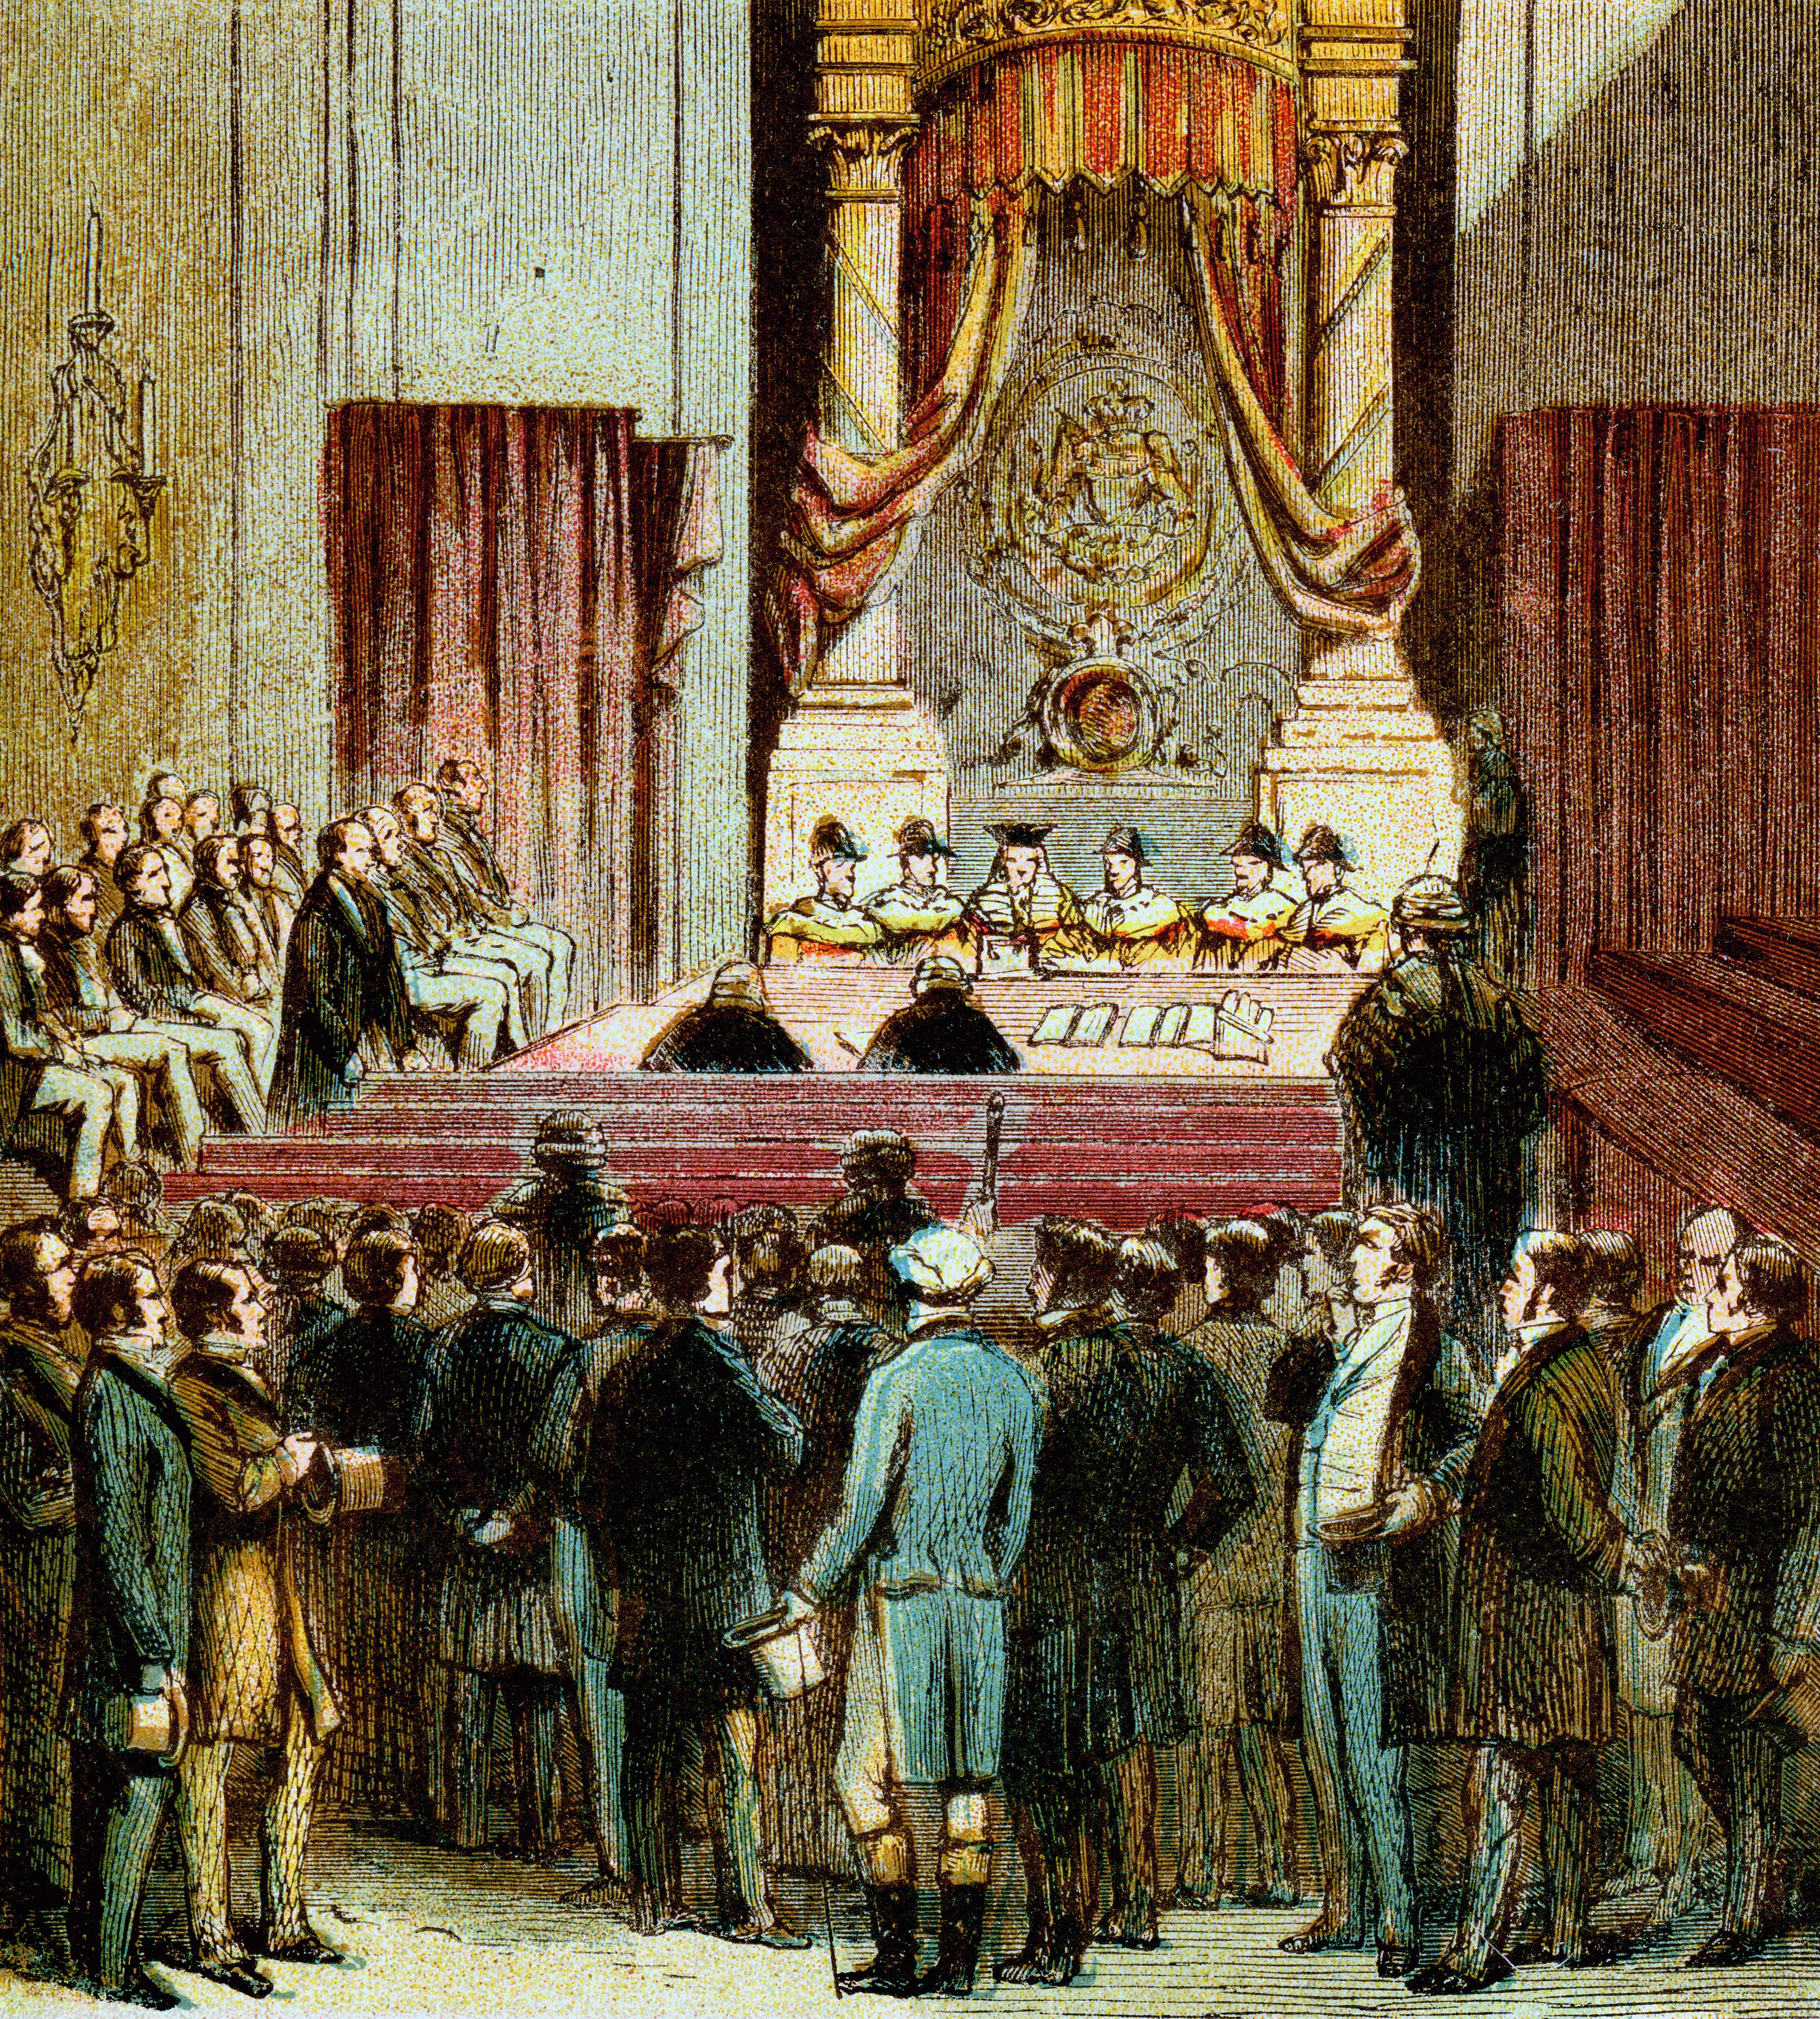 The 1832 Reform Act made wide-ranging changes to the British electoral system, creating 67 new constituencies, disenfranchising 56 boroughs and reducing another 31 to a single MP. (The Print Collector/Print Collector/Getty Images)